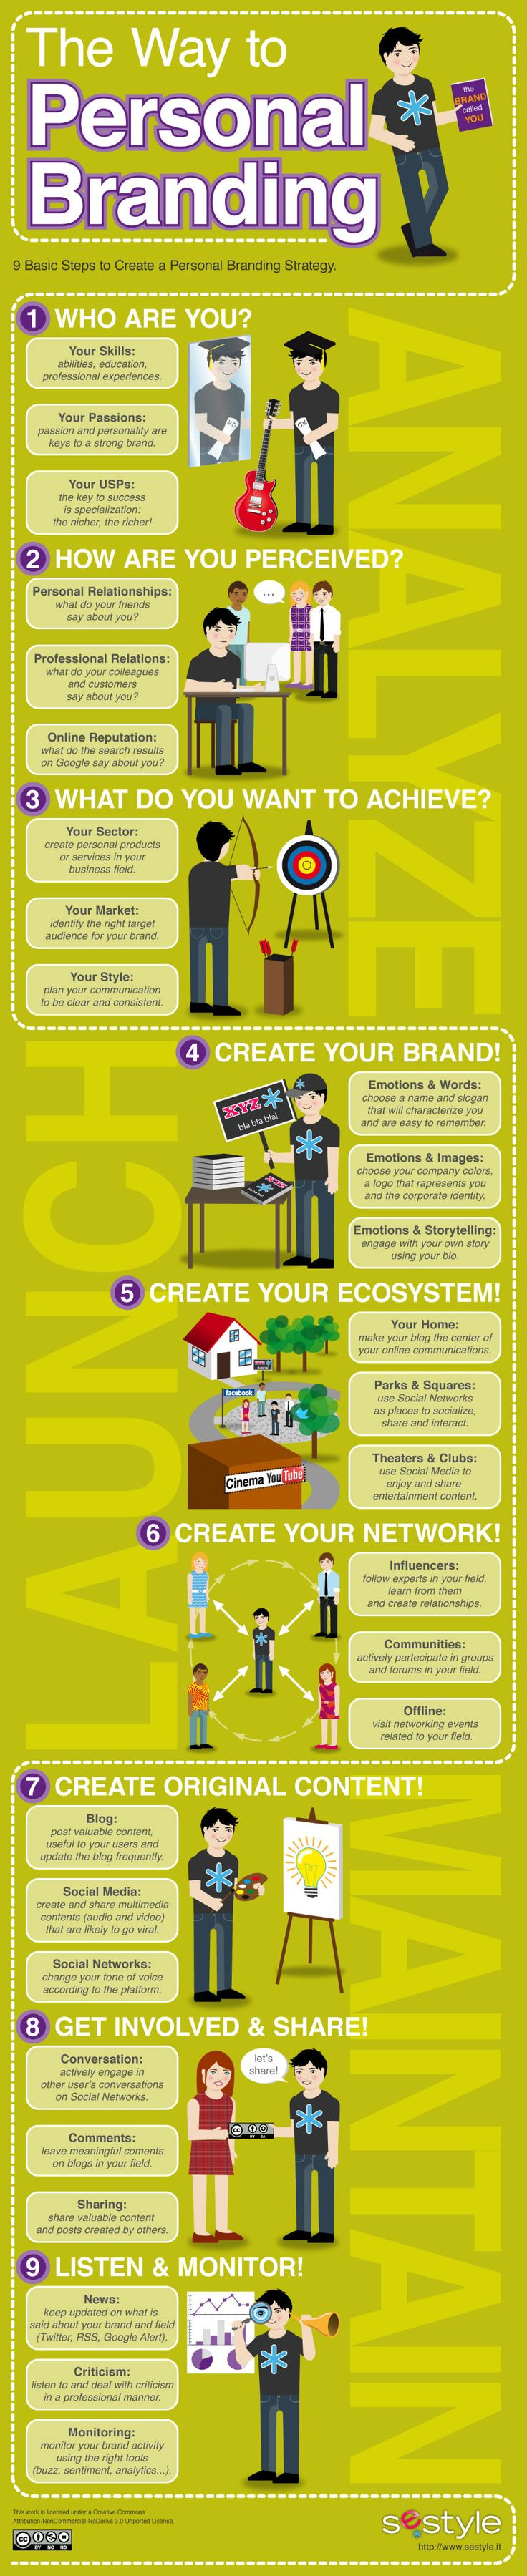 Personal Branding - how to build own brand. #infographic #branding